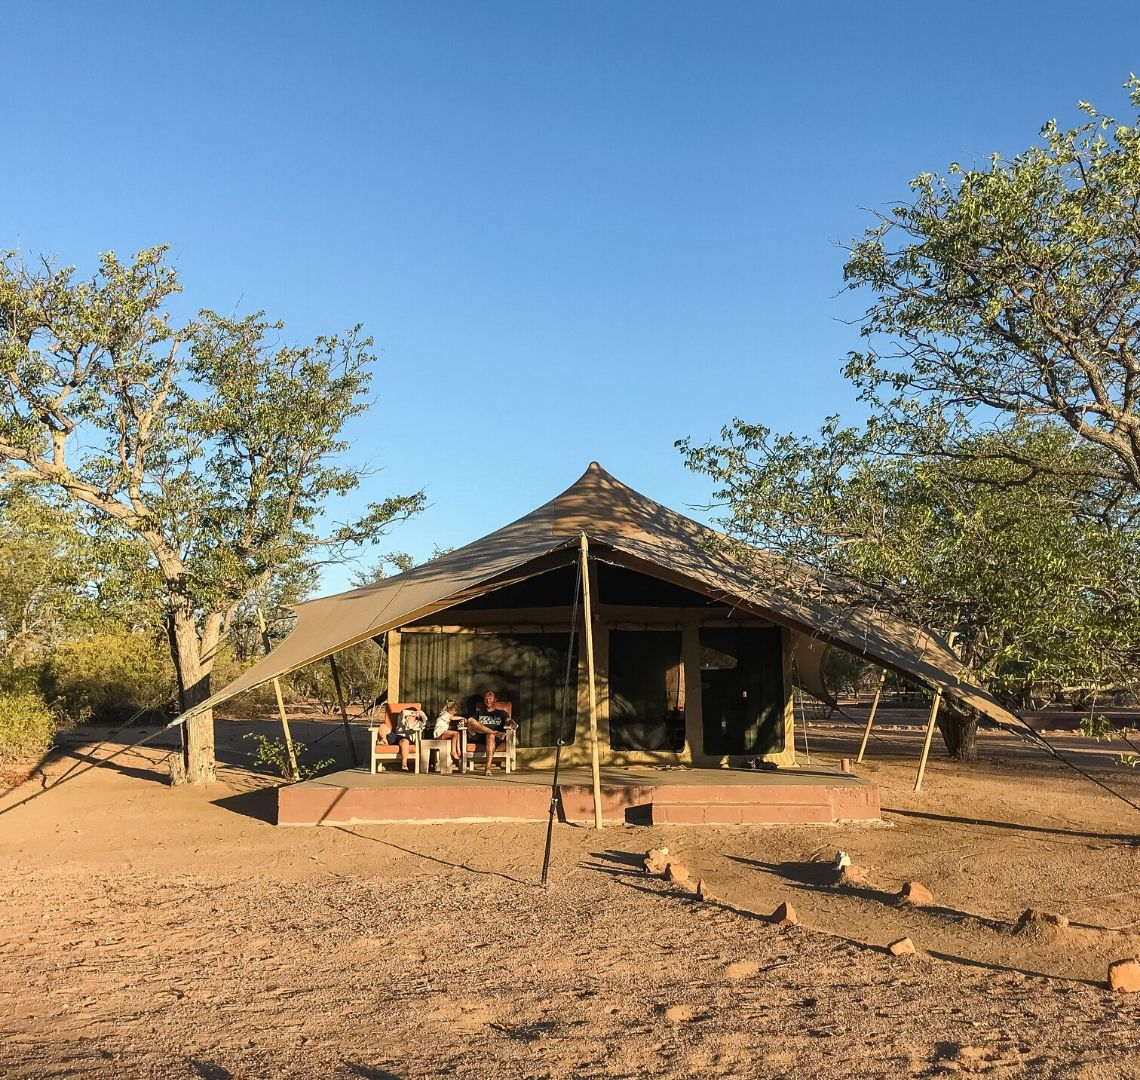 2 Week Namibia Itinerary - Mr Wanderlust and the Things sat outside a large clamping tent at Malansrus as the evening sun makes the colours softer and the shadows longer